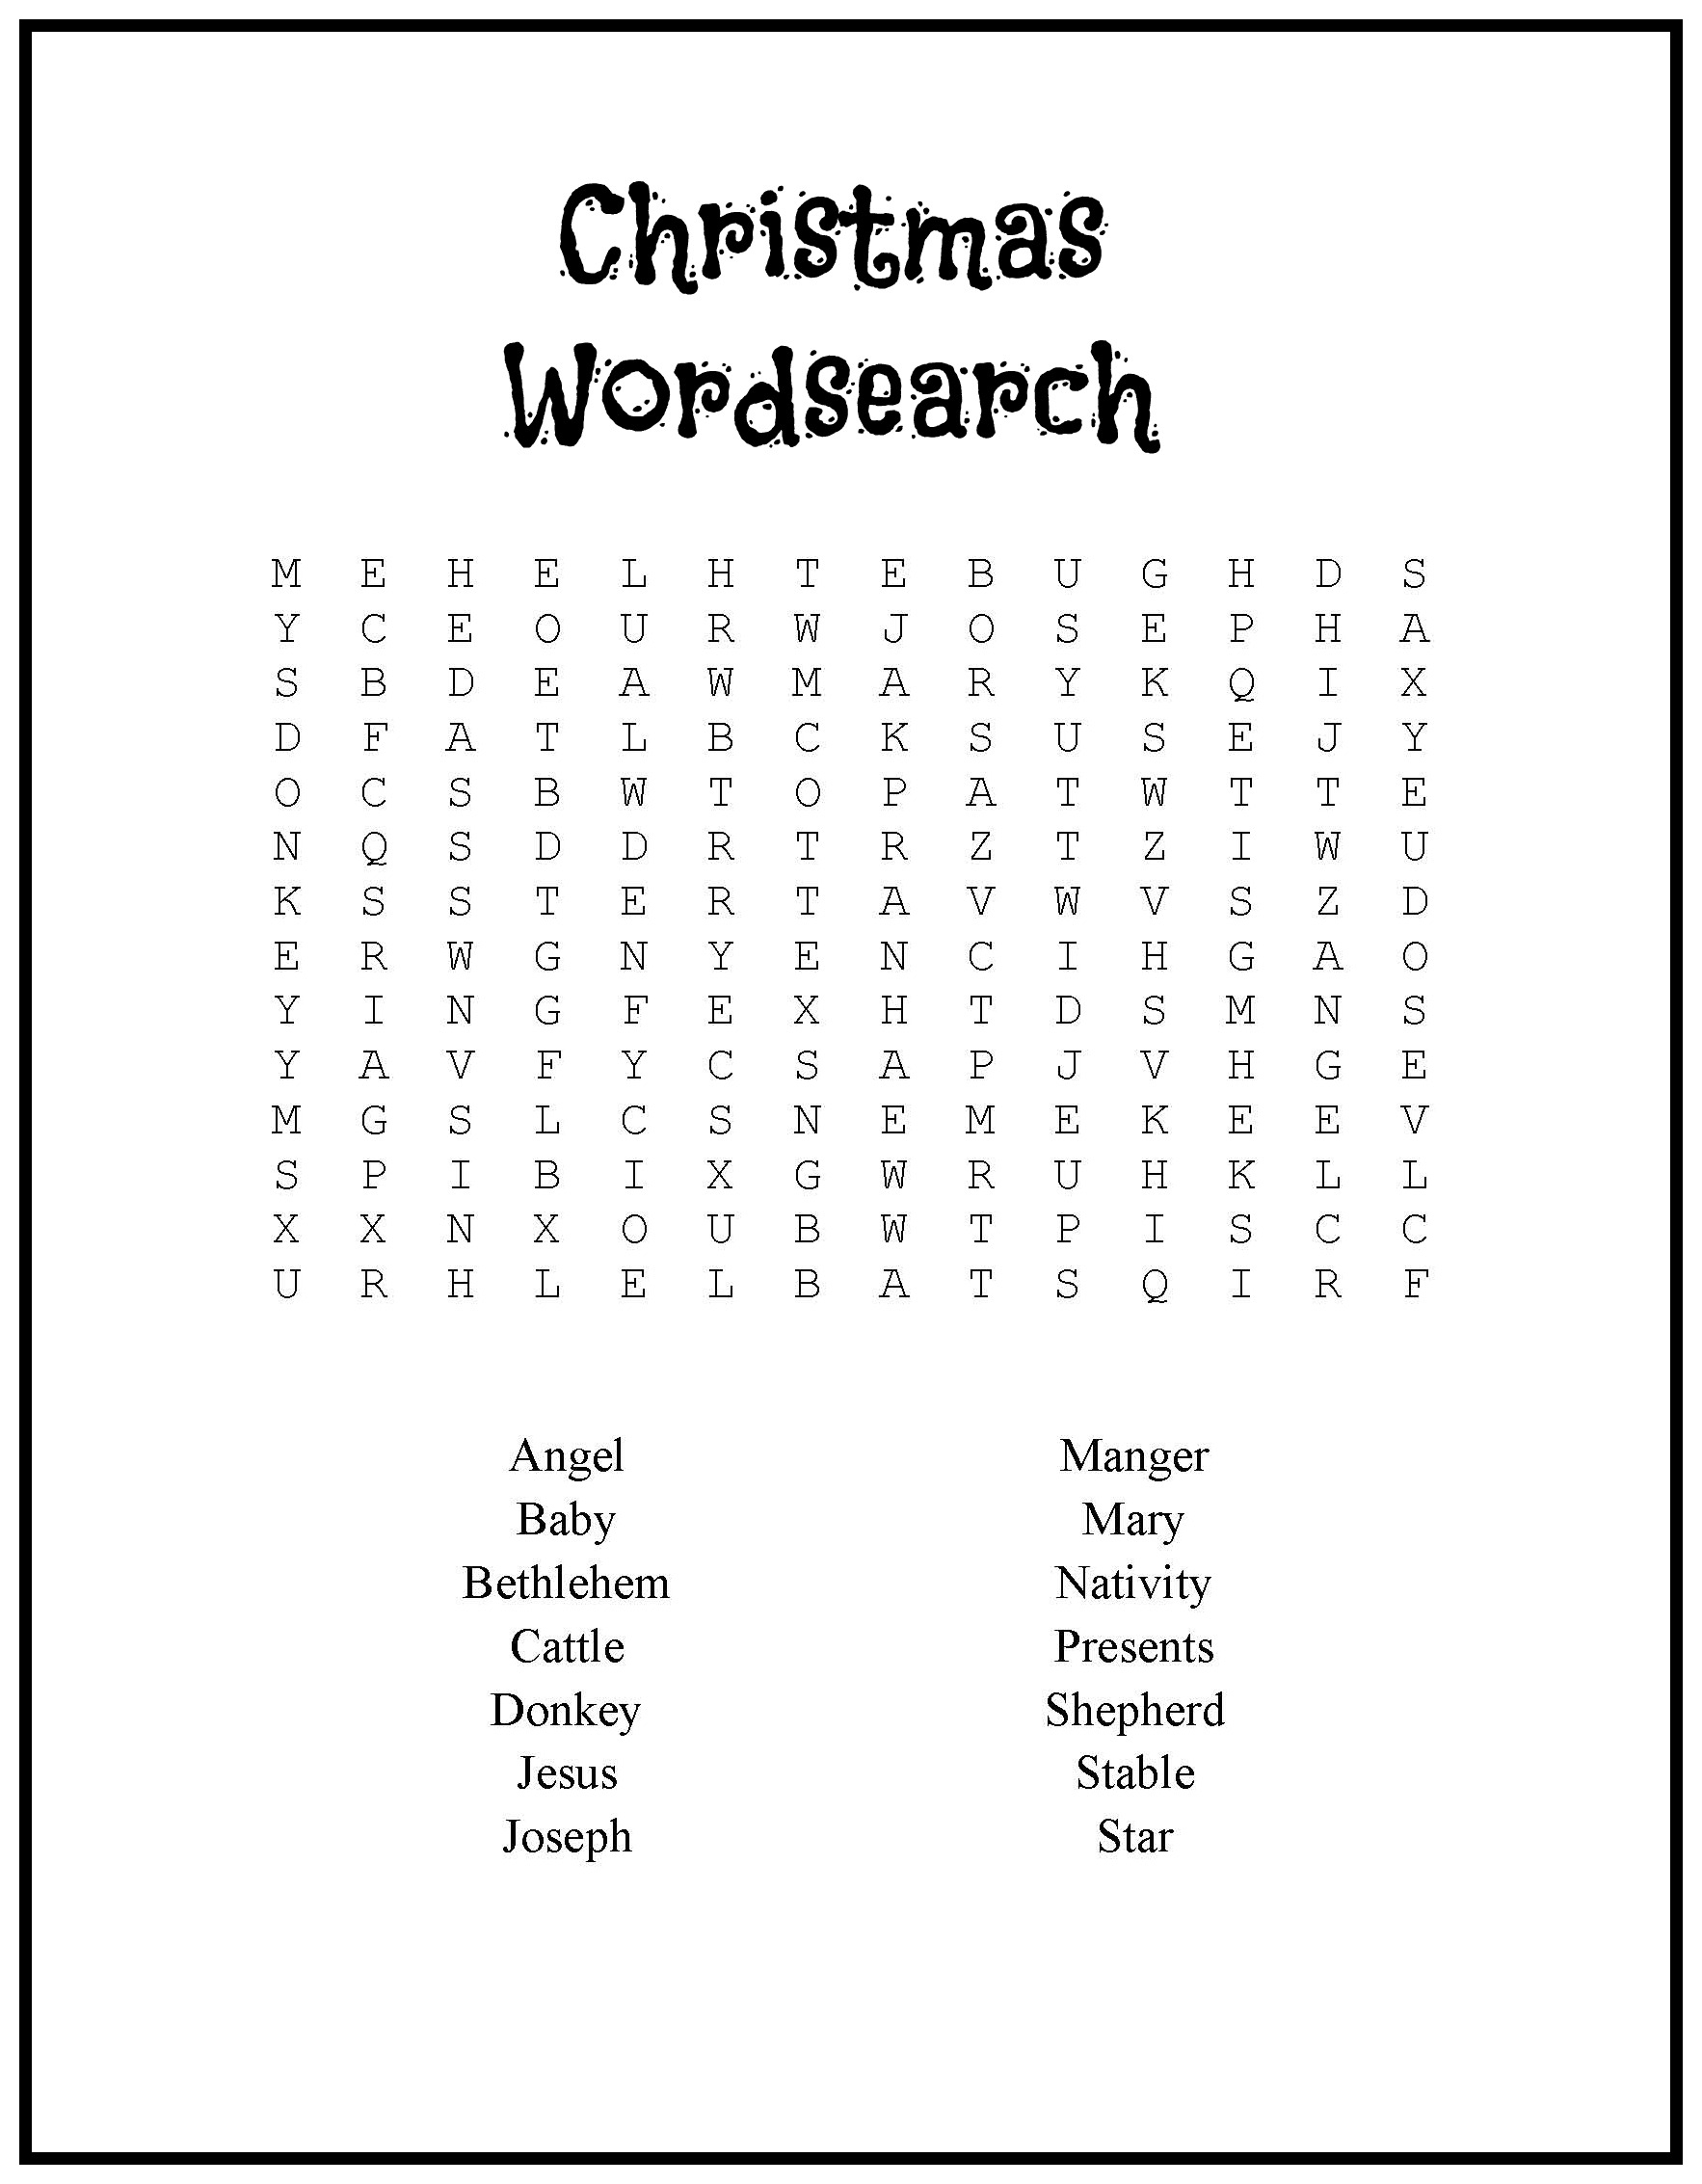 Wscrc37 | Hd++ | Free Word Search Christmas Religious